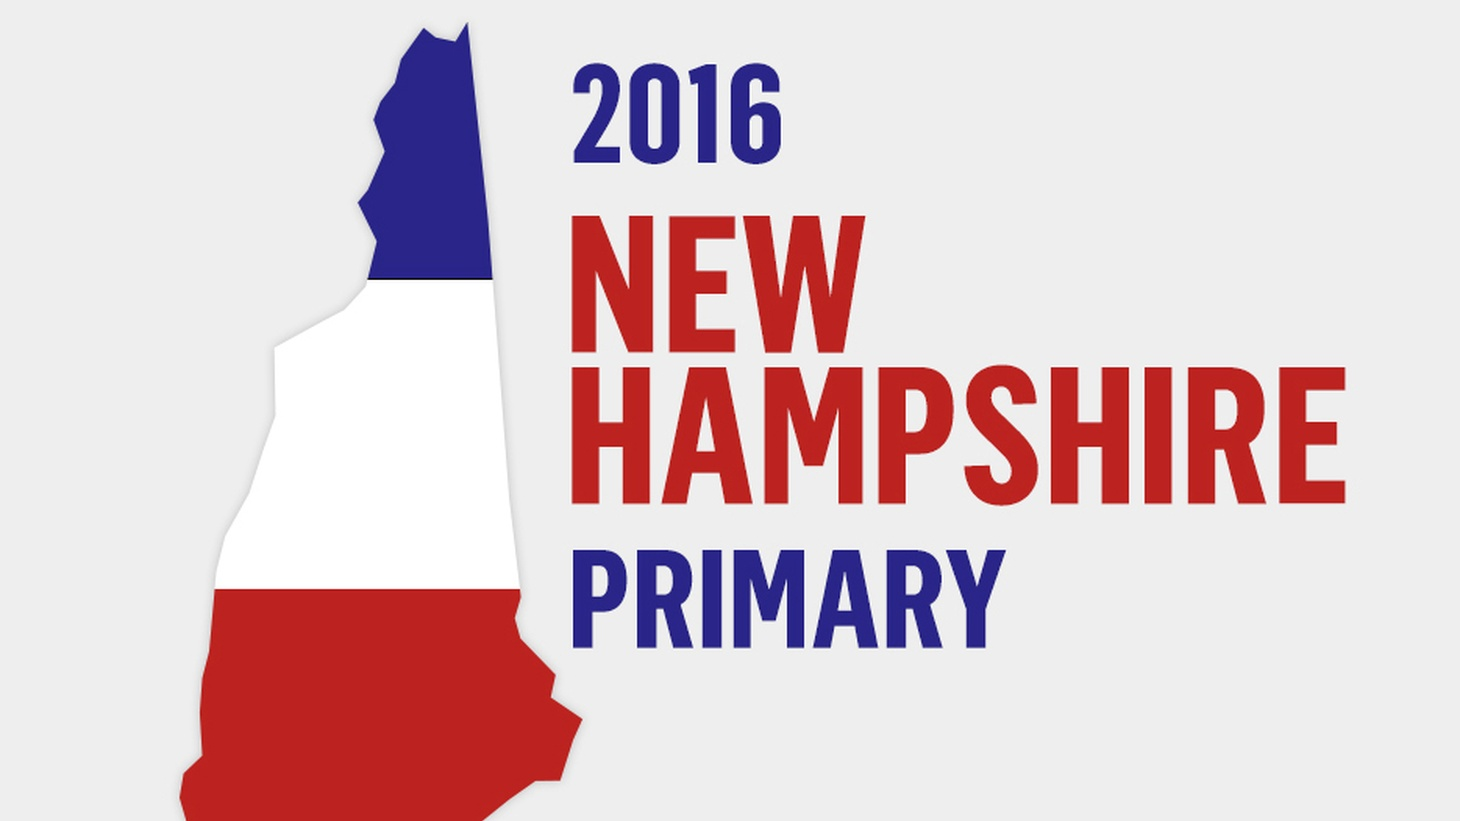 KCRW will air NPR's special coverage of the New Hampshire primary on Tuesday, February 9 from 5-8pm, including candidate speeches, newsmaker interviews, and analysis.